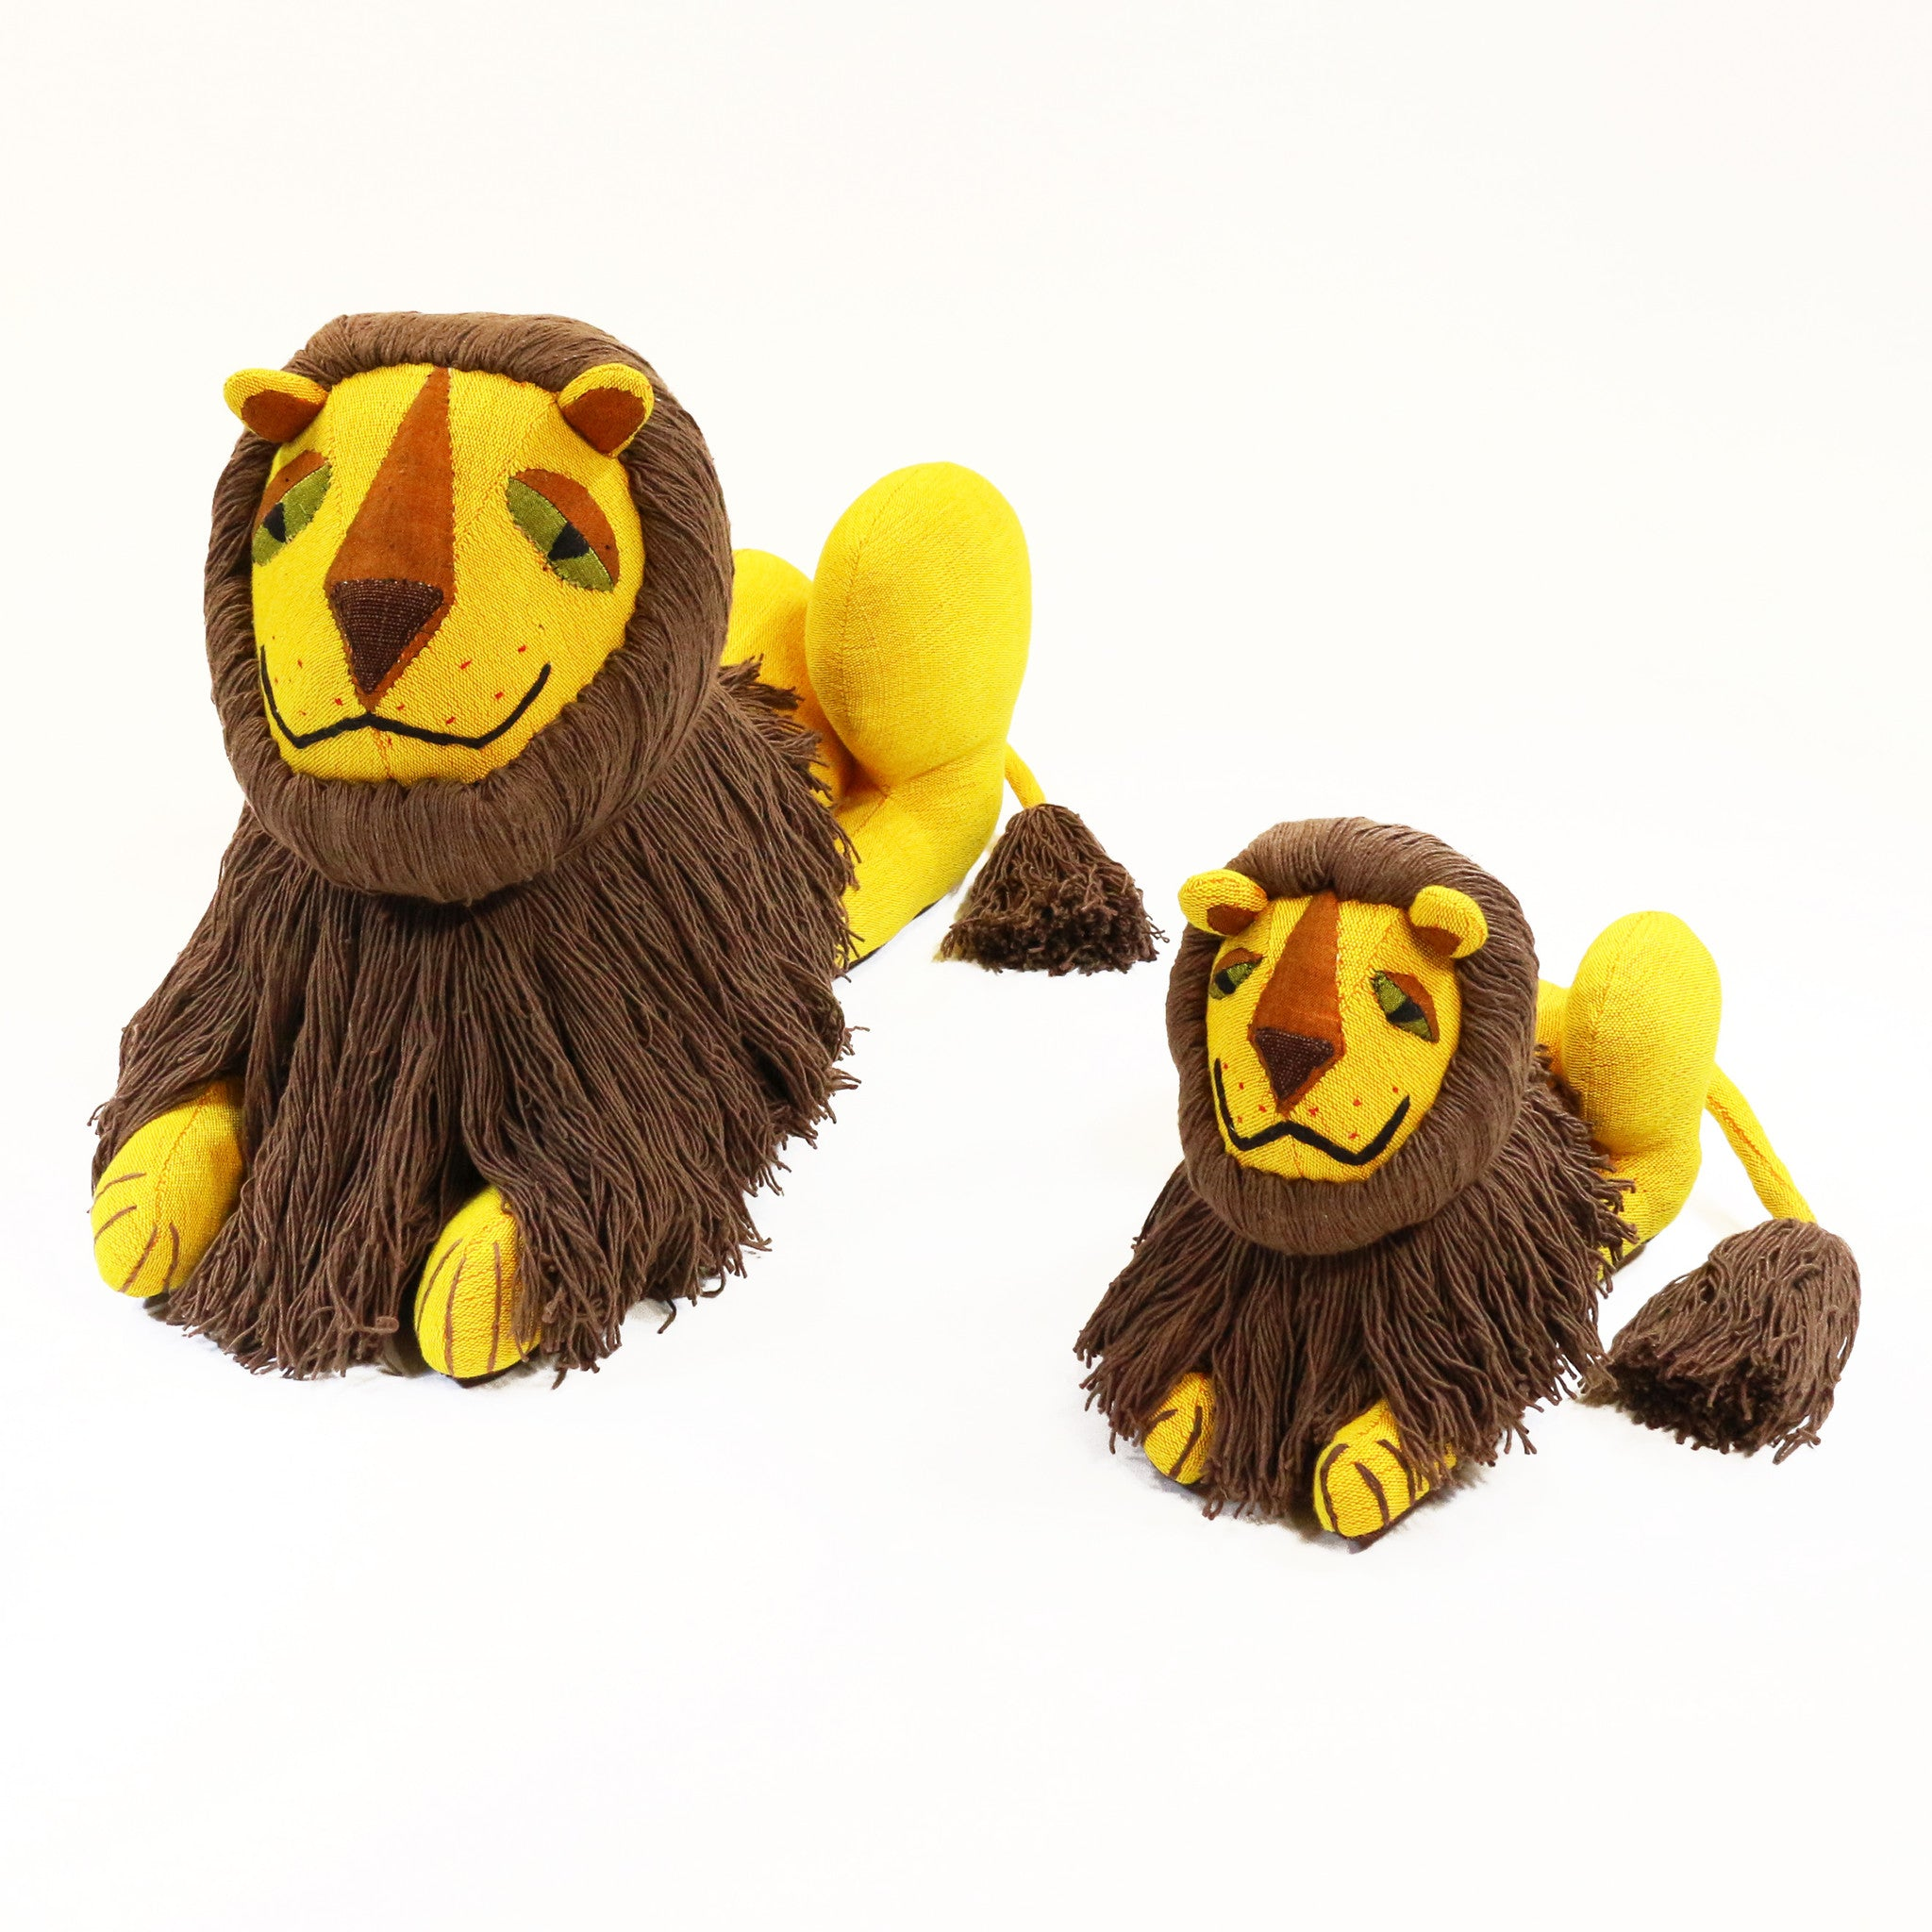 Leo, the Lion (small & large sizes)